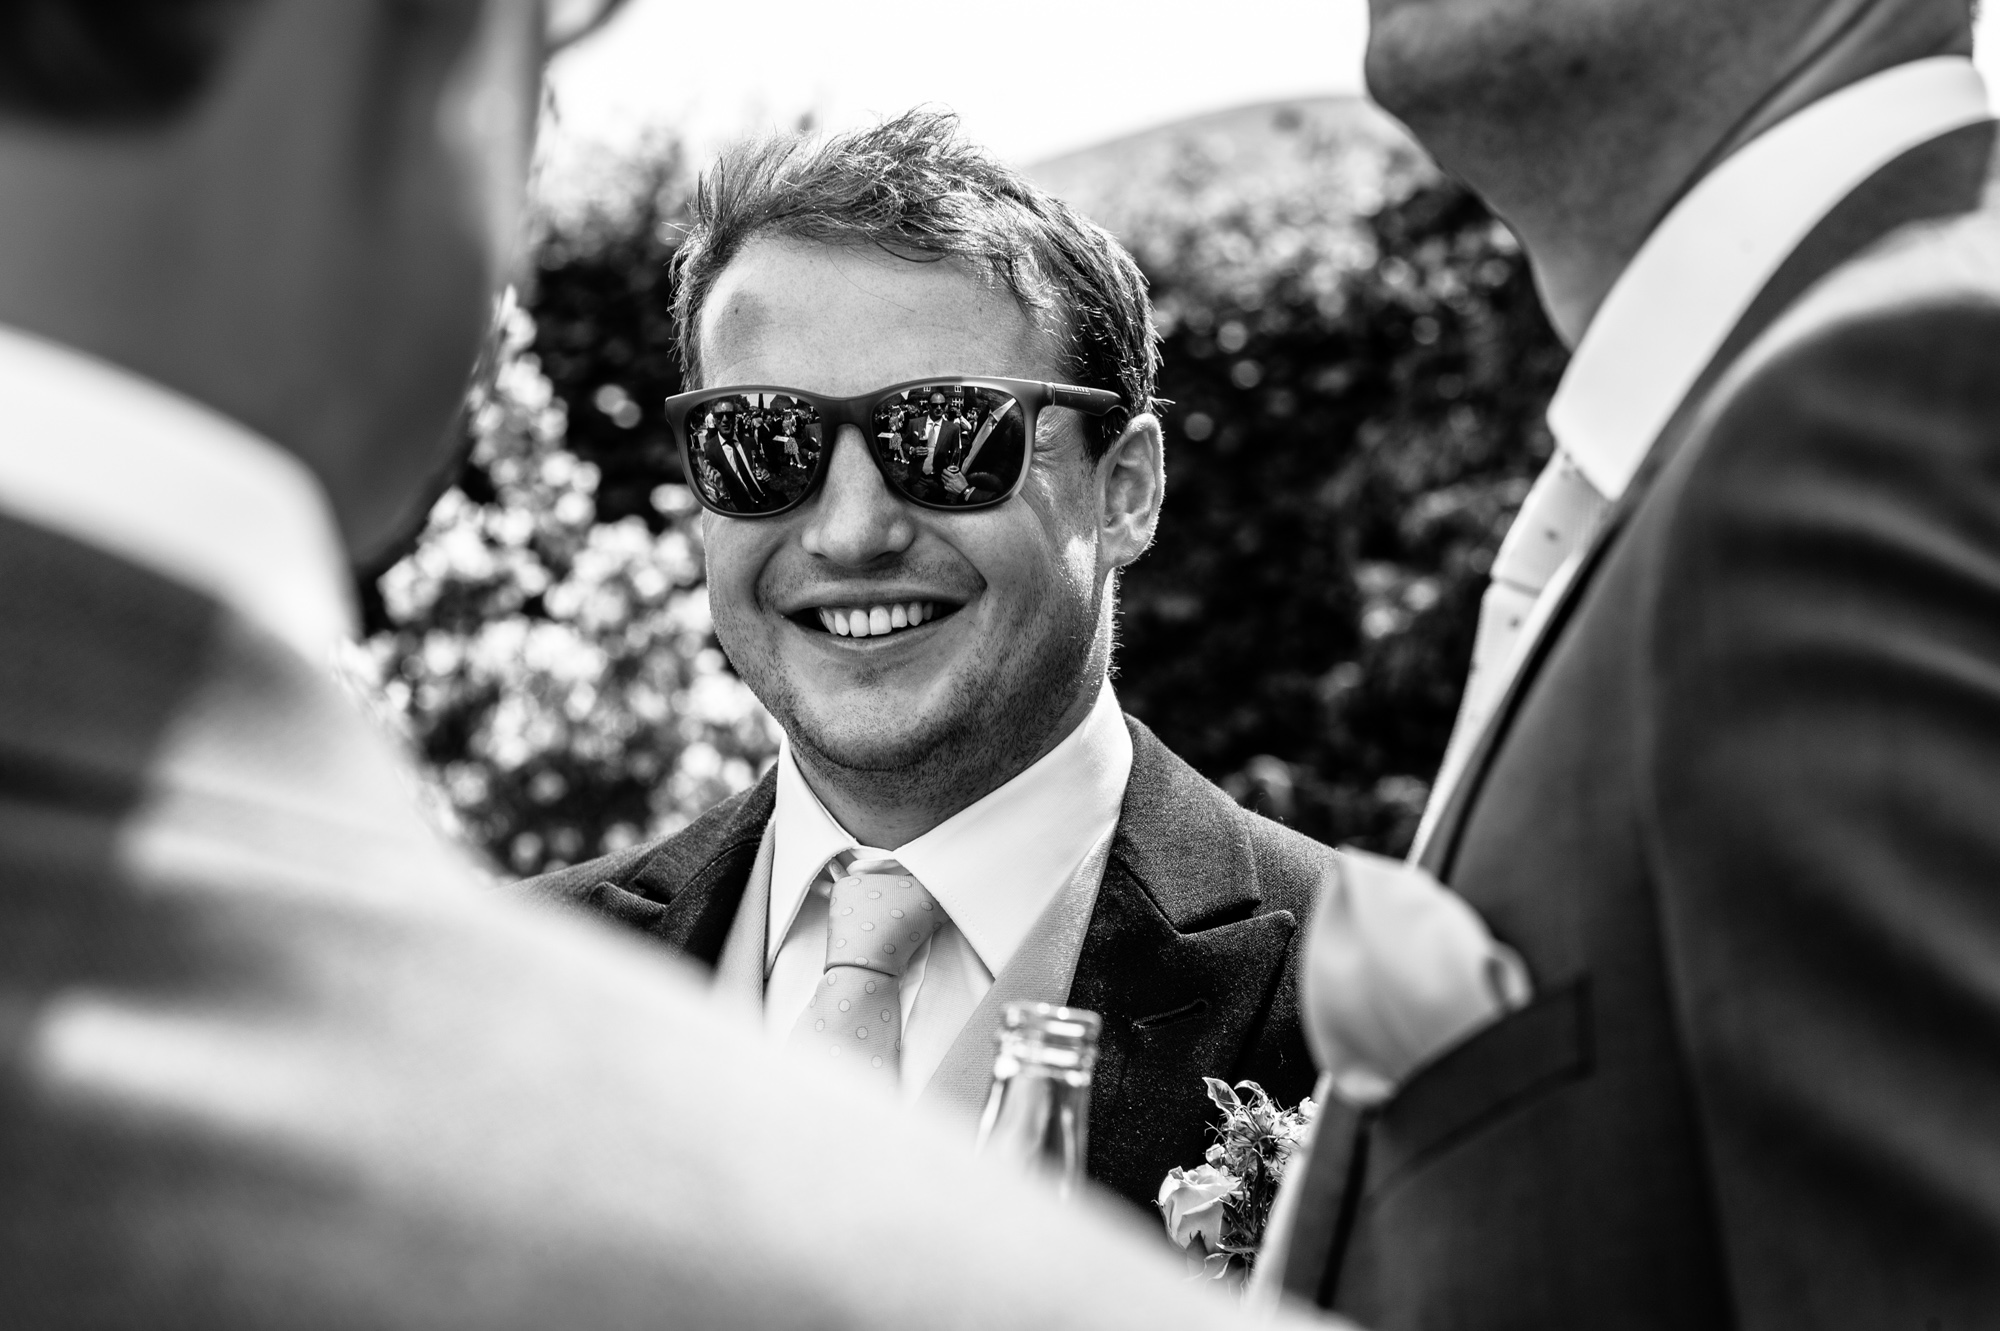 Cotswold Wedding Photography 11.09.1824.jpg